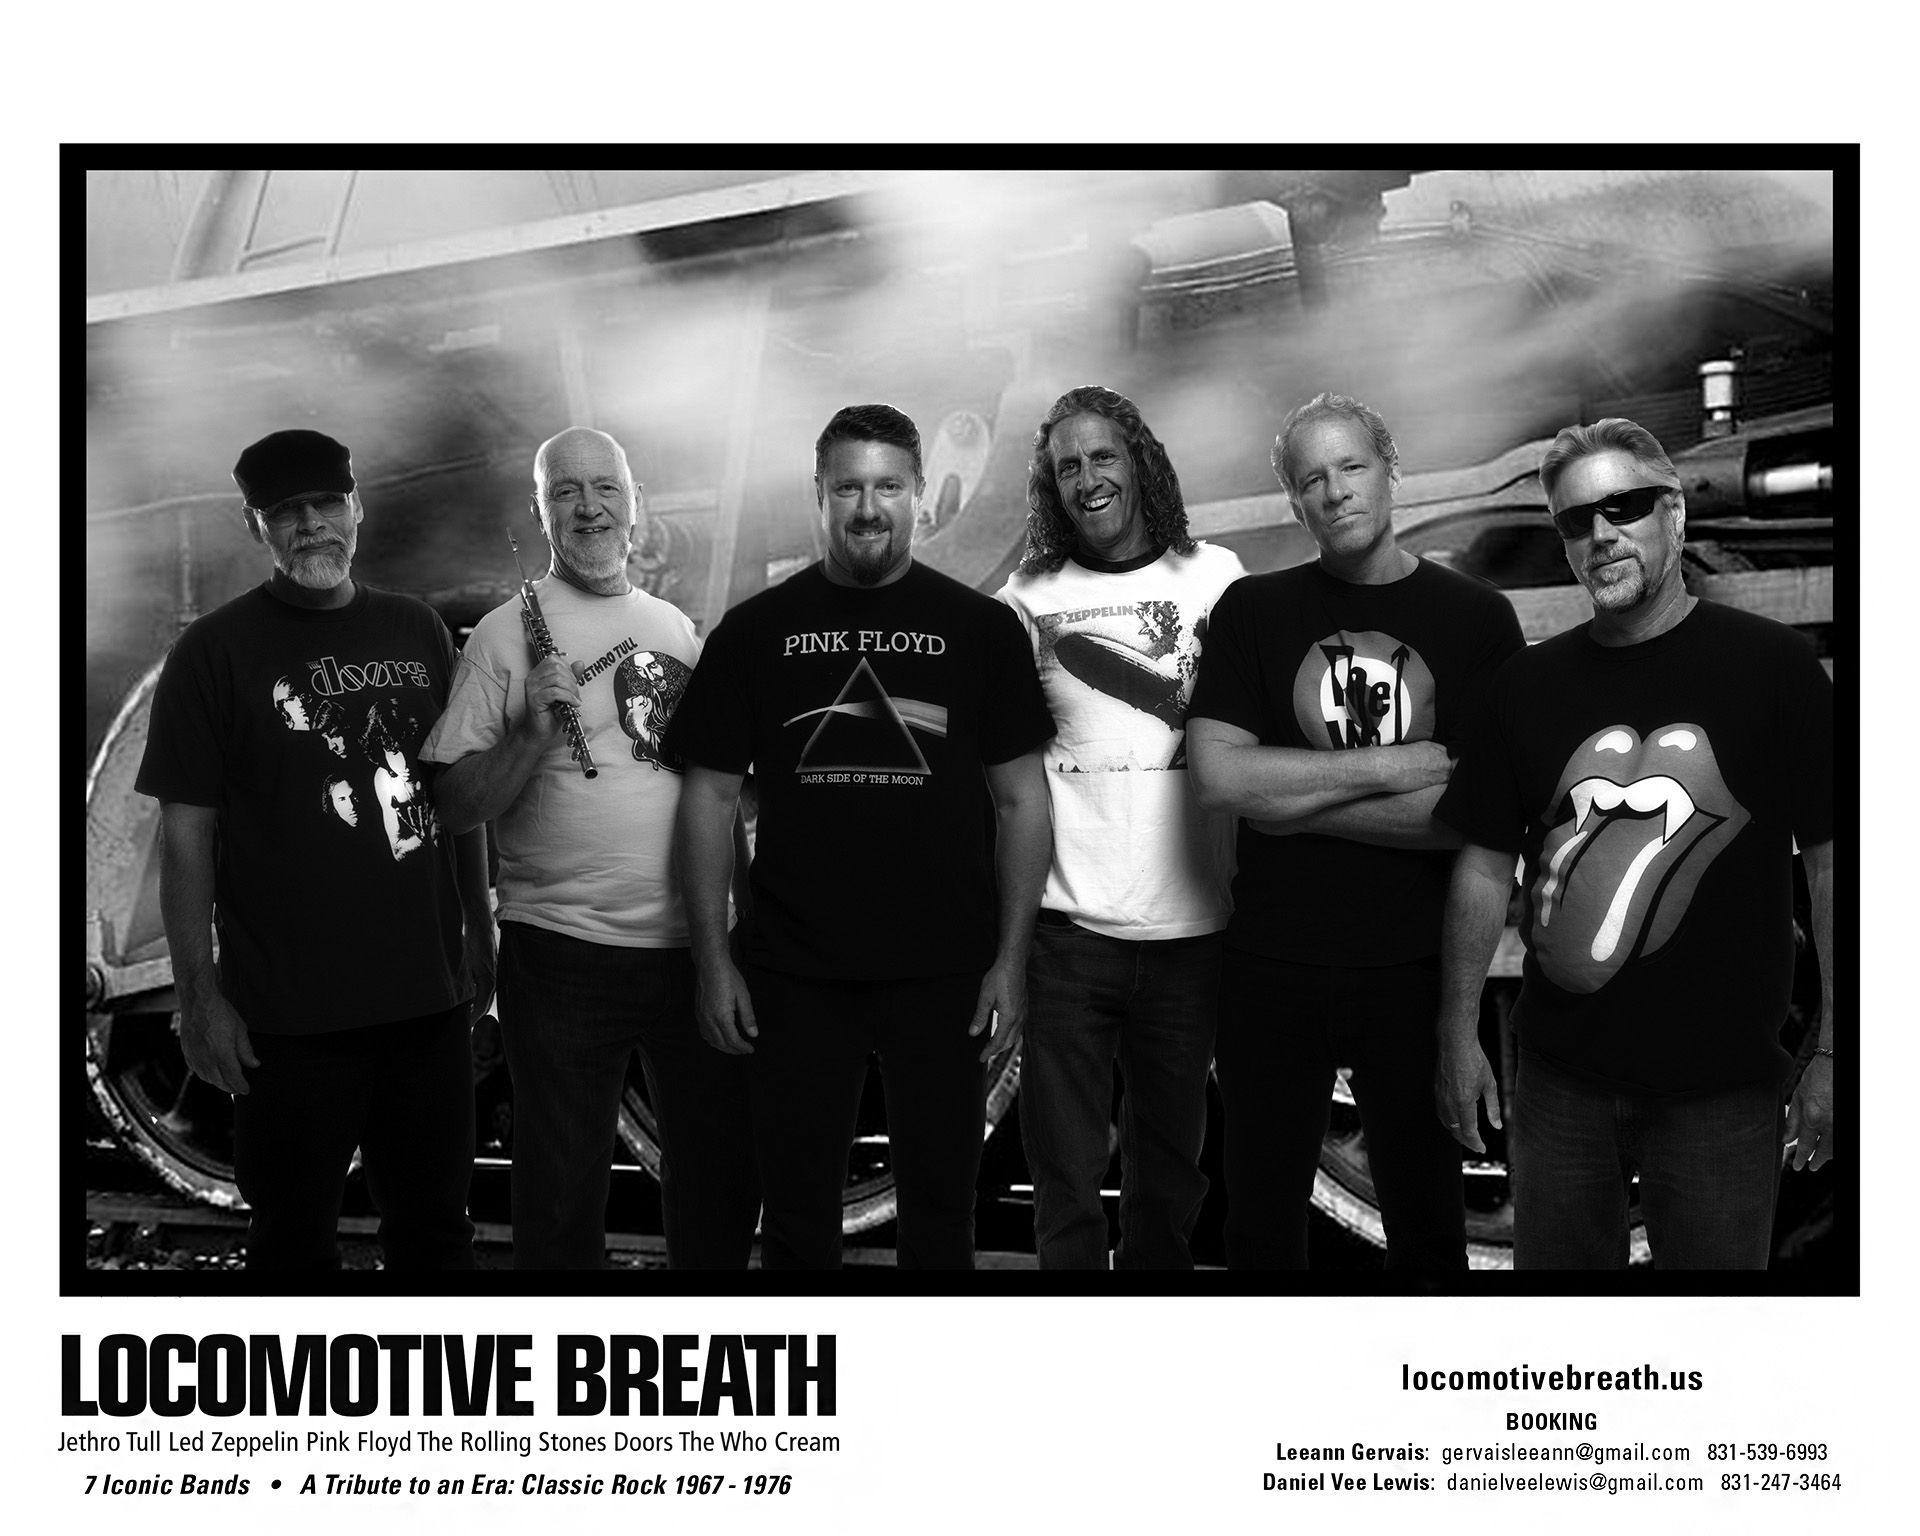 Locomotive Breath Santa Cruz